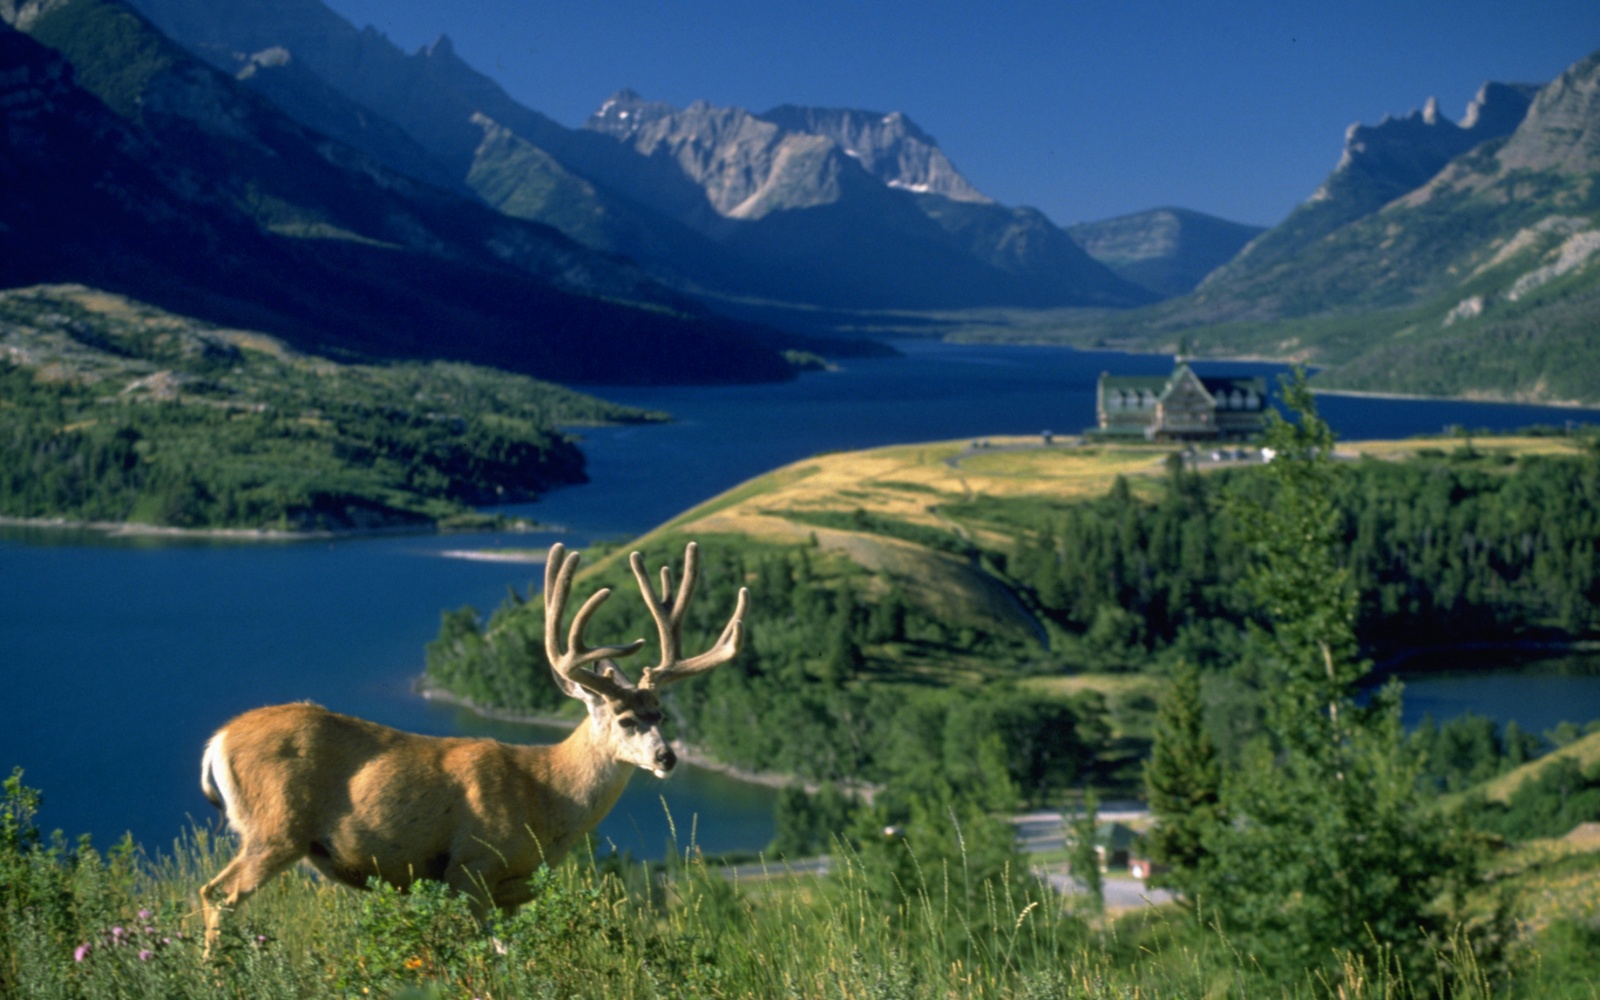 Waterton Glacier Suites, Waterton Lakes National Park, Alberta, Canada